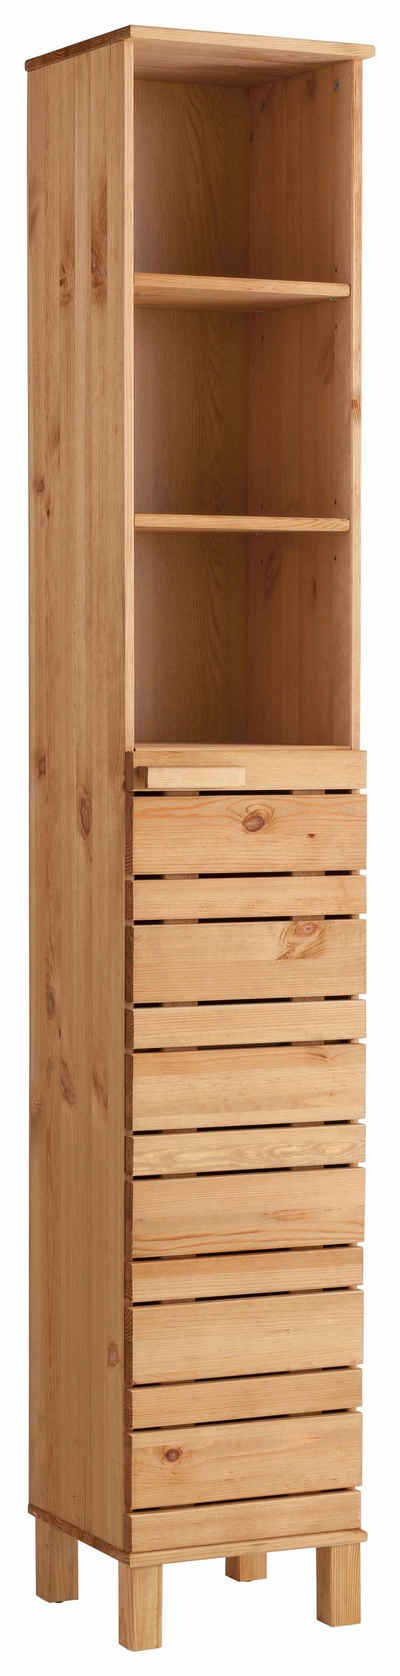 schrank 20 cm breit free super schrank cm breit andere. Black Bedroom Furniture Sets. Home Design Ideas